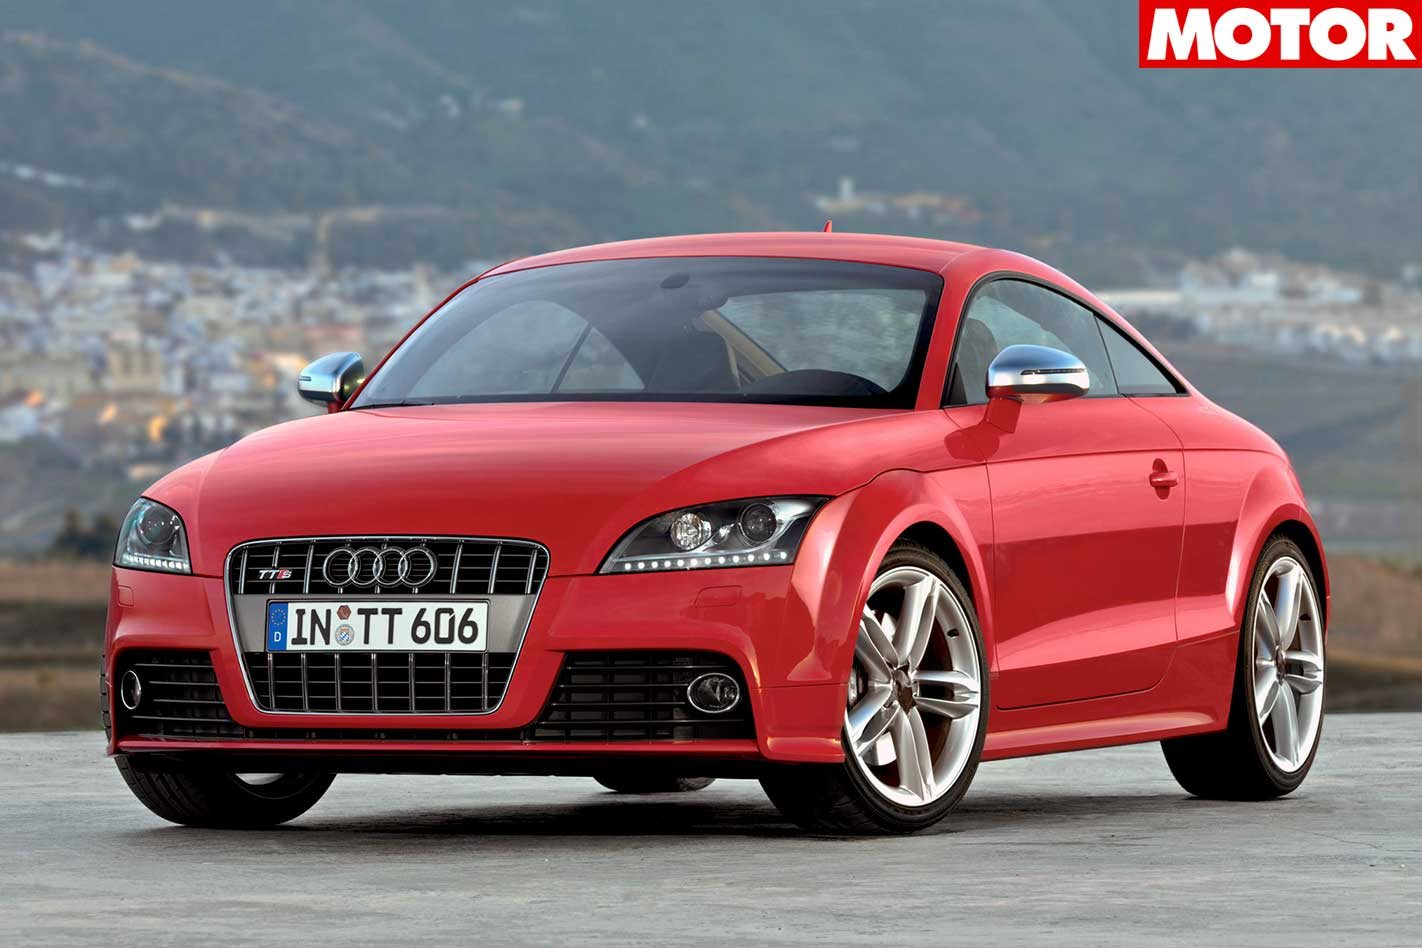 2008 Audi TTS coupe review: classic MOTOR